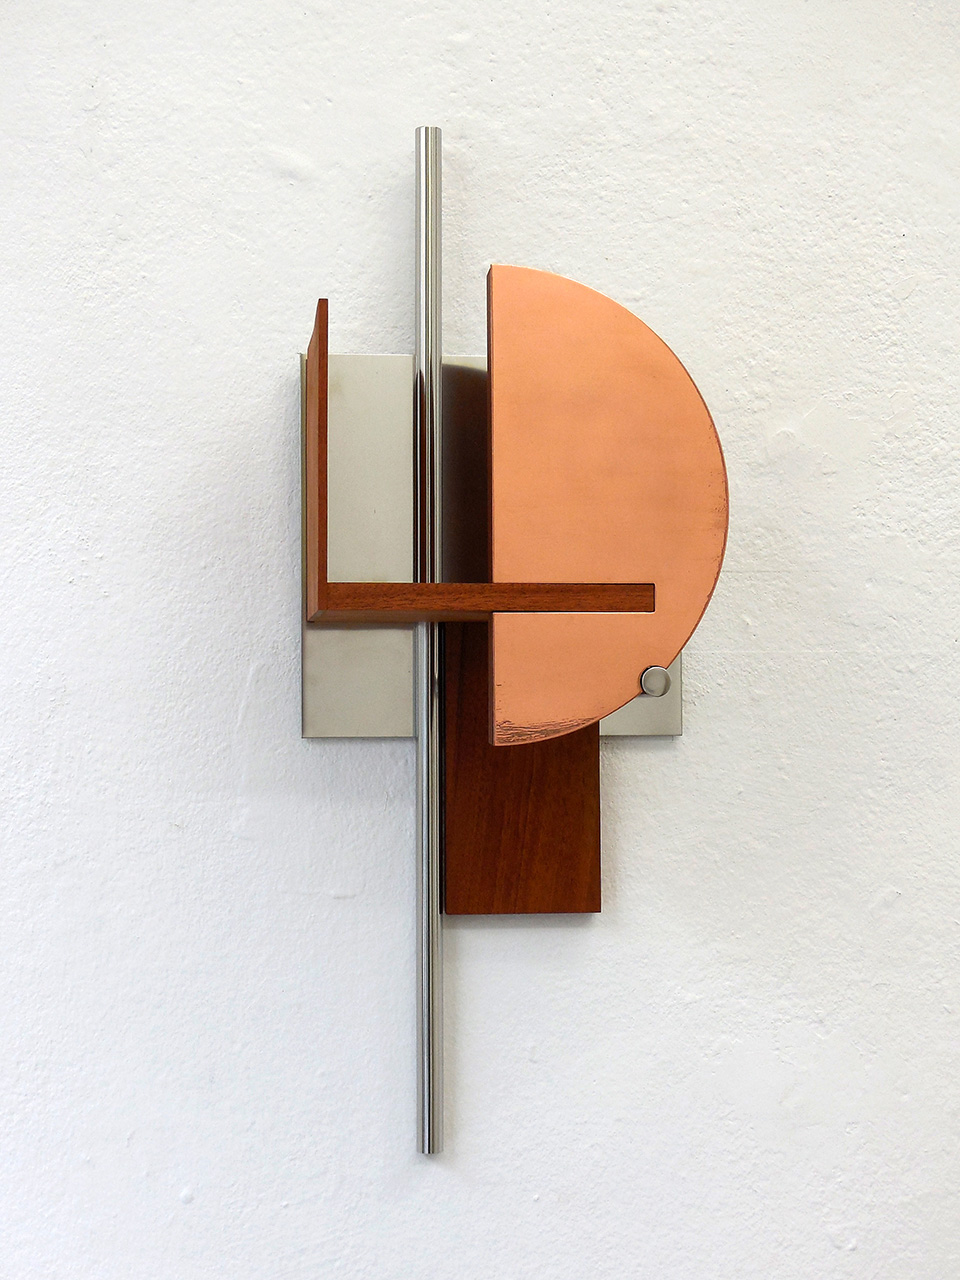 «Shapes for a perfect world. Shape 1», 2017, Mahogany, steel, bronze, 61 x 23 x 17 cm